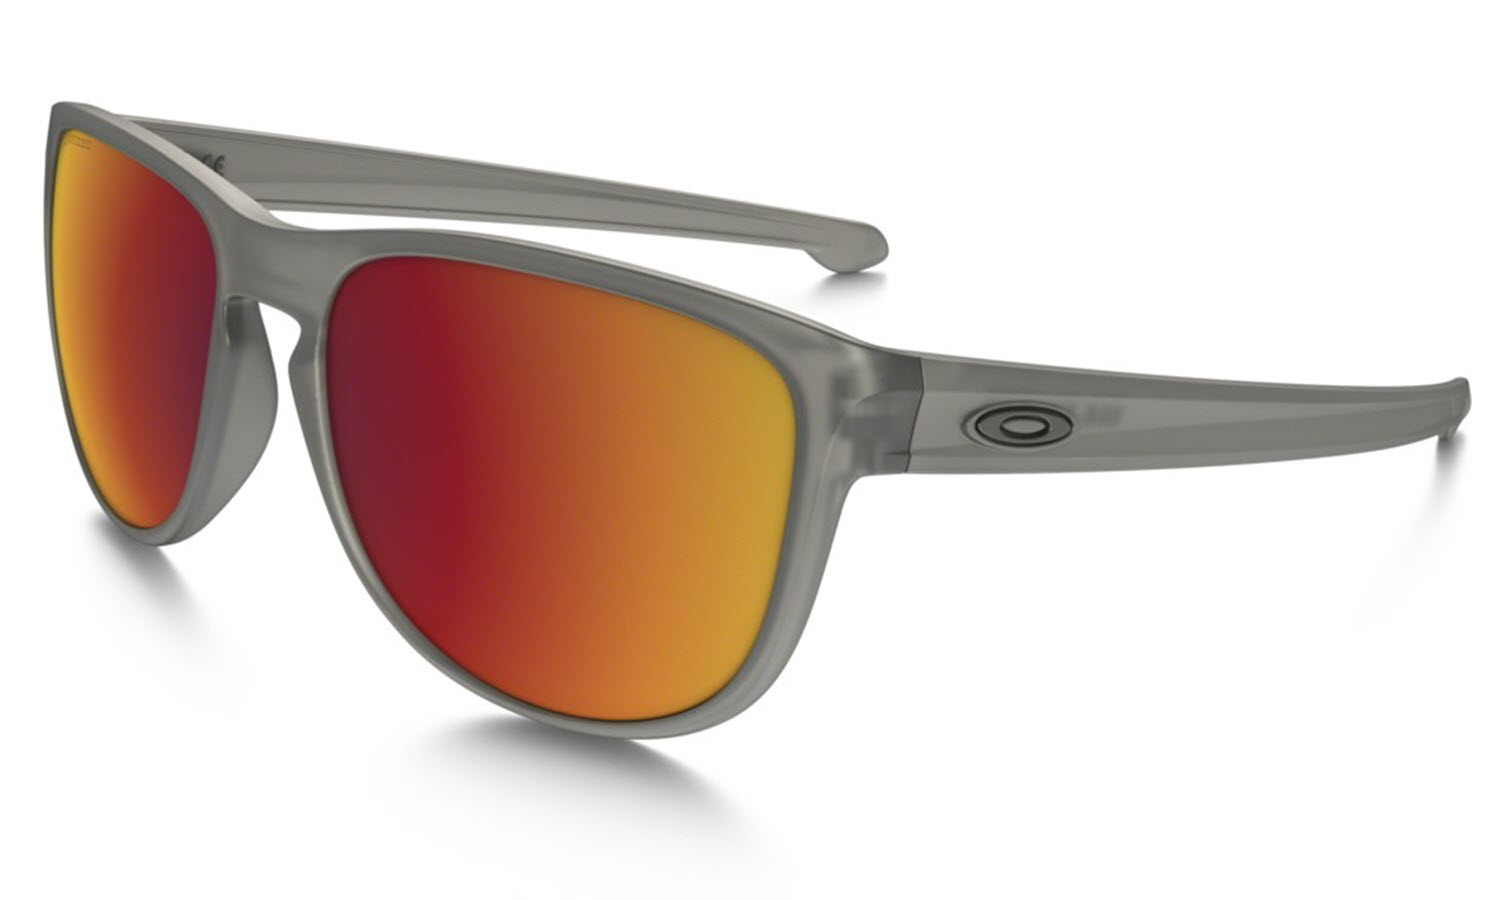 b52a0b1e5af73 Details about Oakley Sunglasses - Sliver R - Grey Ink, Torch Iridium  Polarized OO9342-03